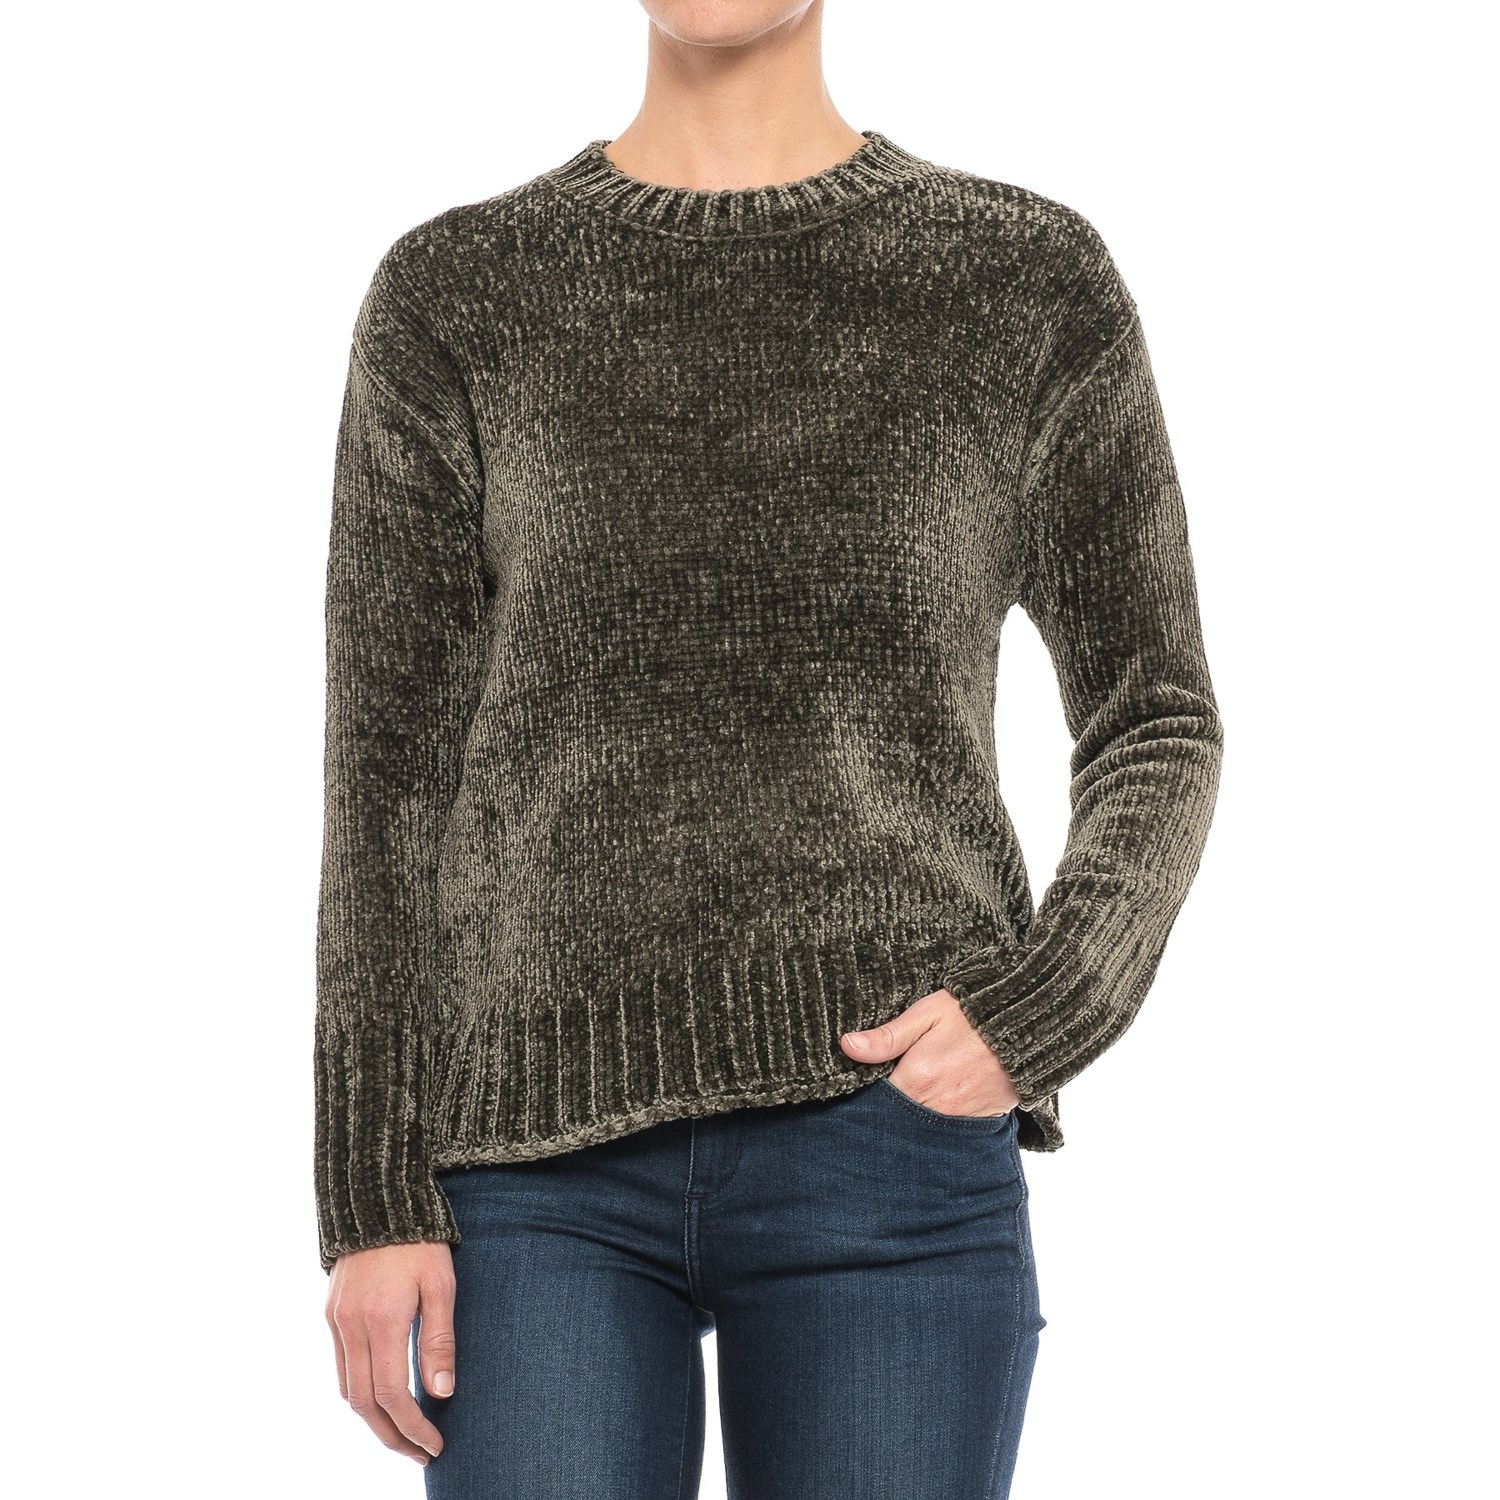 Customer Reviews of Philosophy Chenille Sweater (For Women)